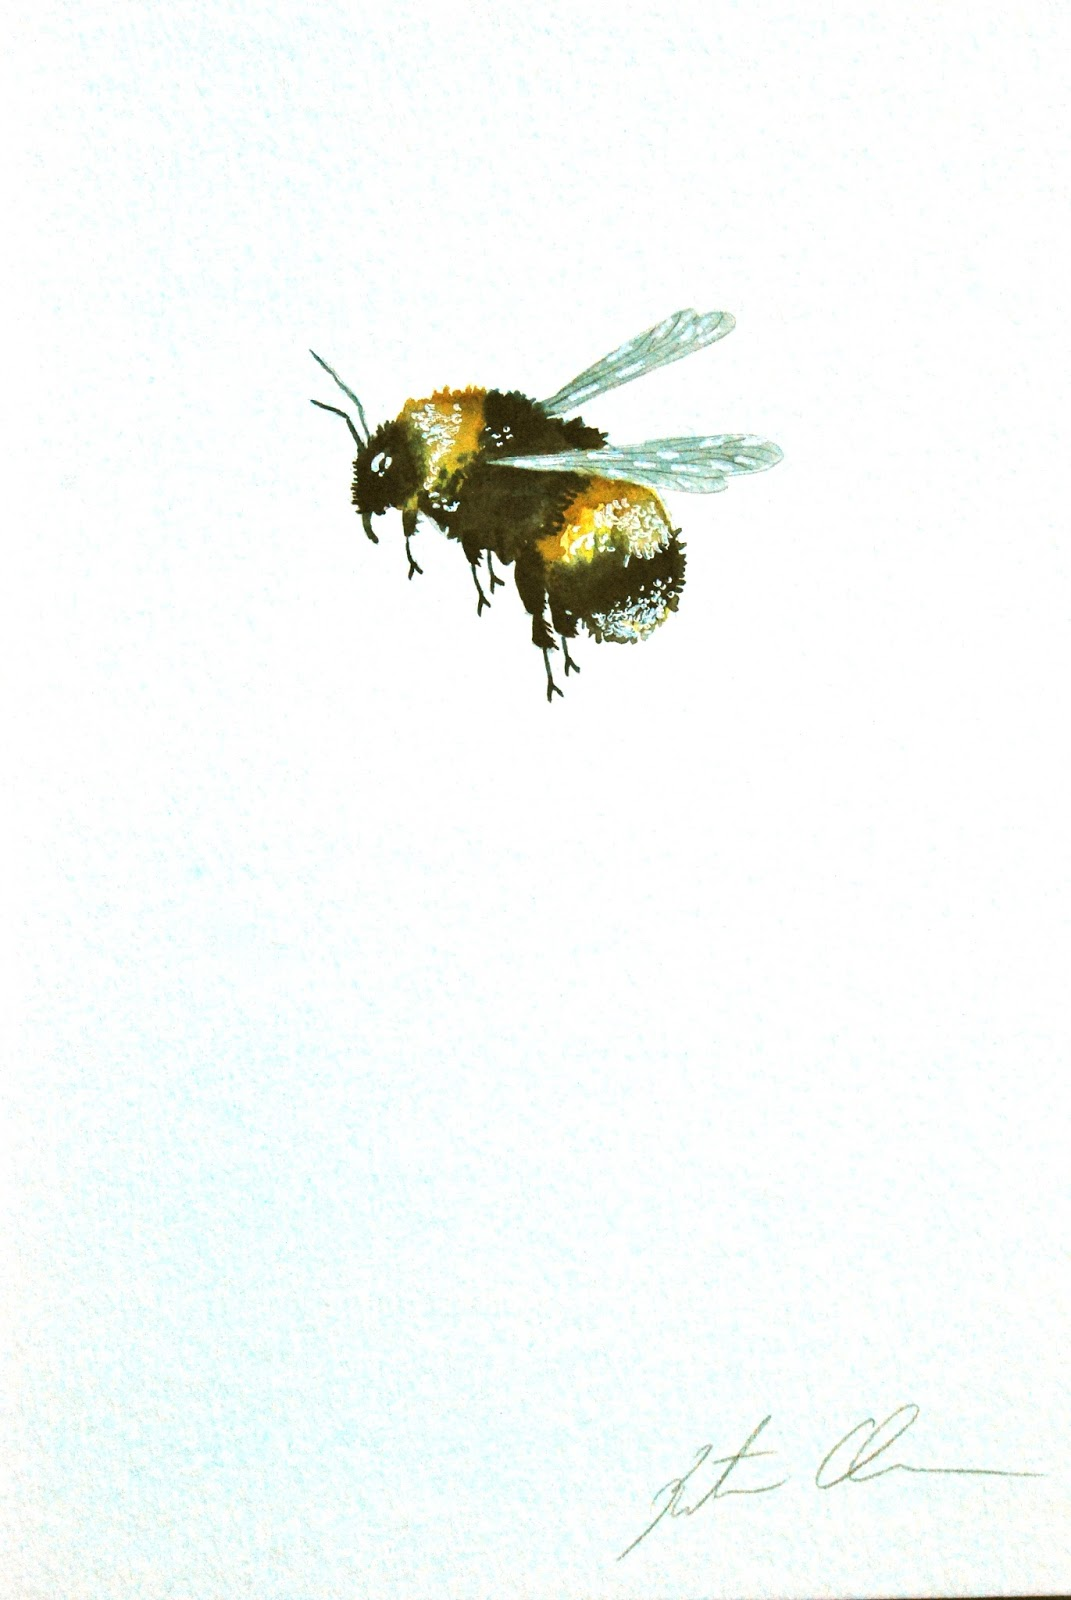 Painting in Trees: Bumble Bee Flying